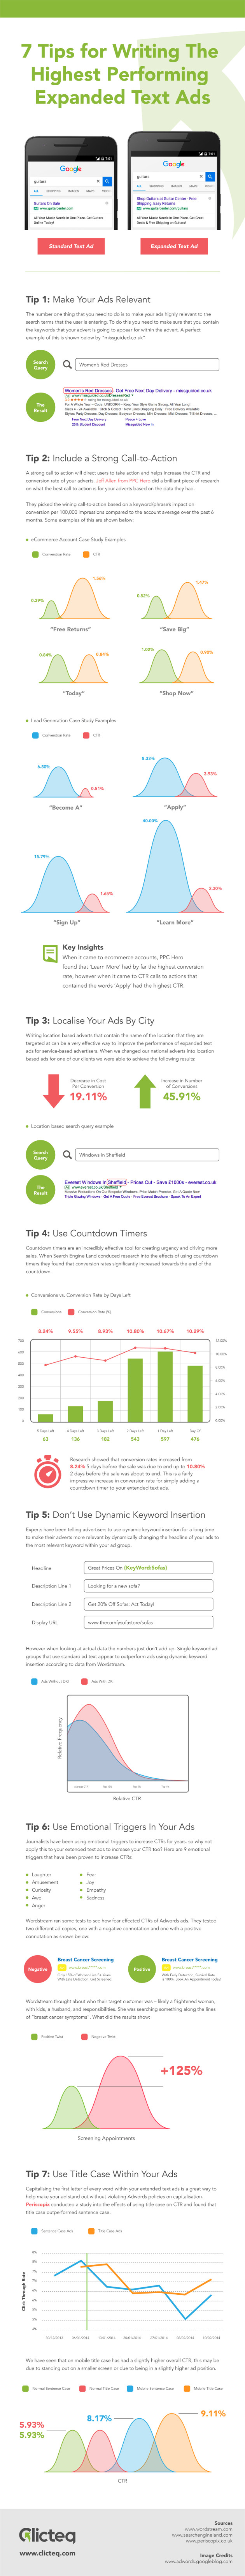 Better-Performing Fast Expanded Text Ads [Infographic]